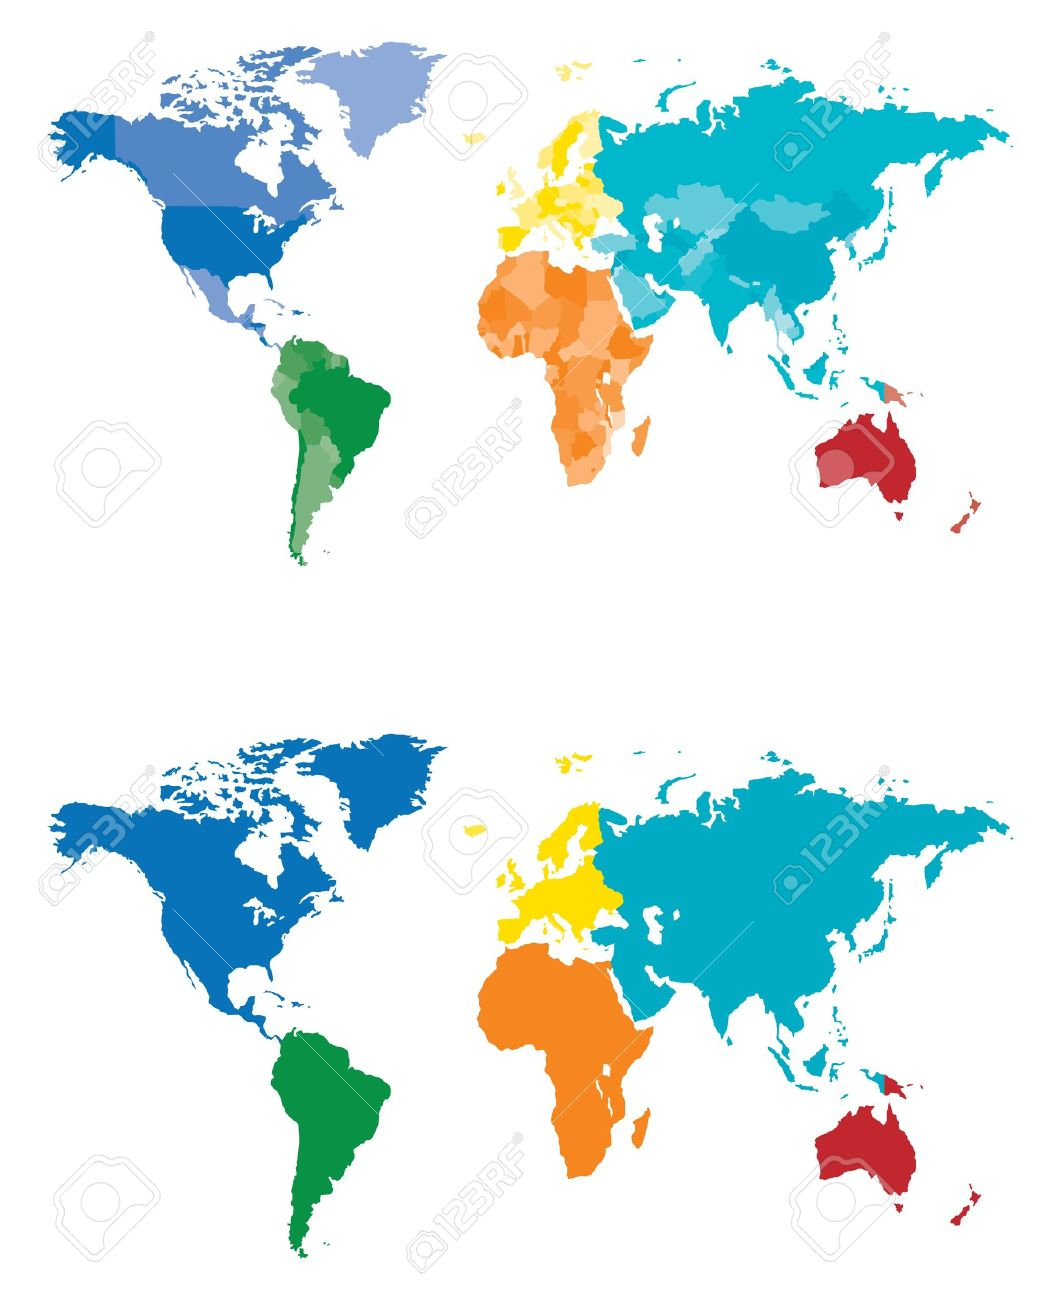 Continent and country map separated by color royalty free cliparts continent and country map separated by color stock vector 15513359 gumiabroncs Choice Image